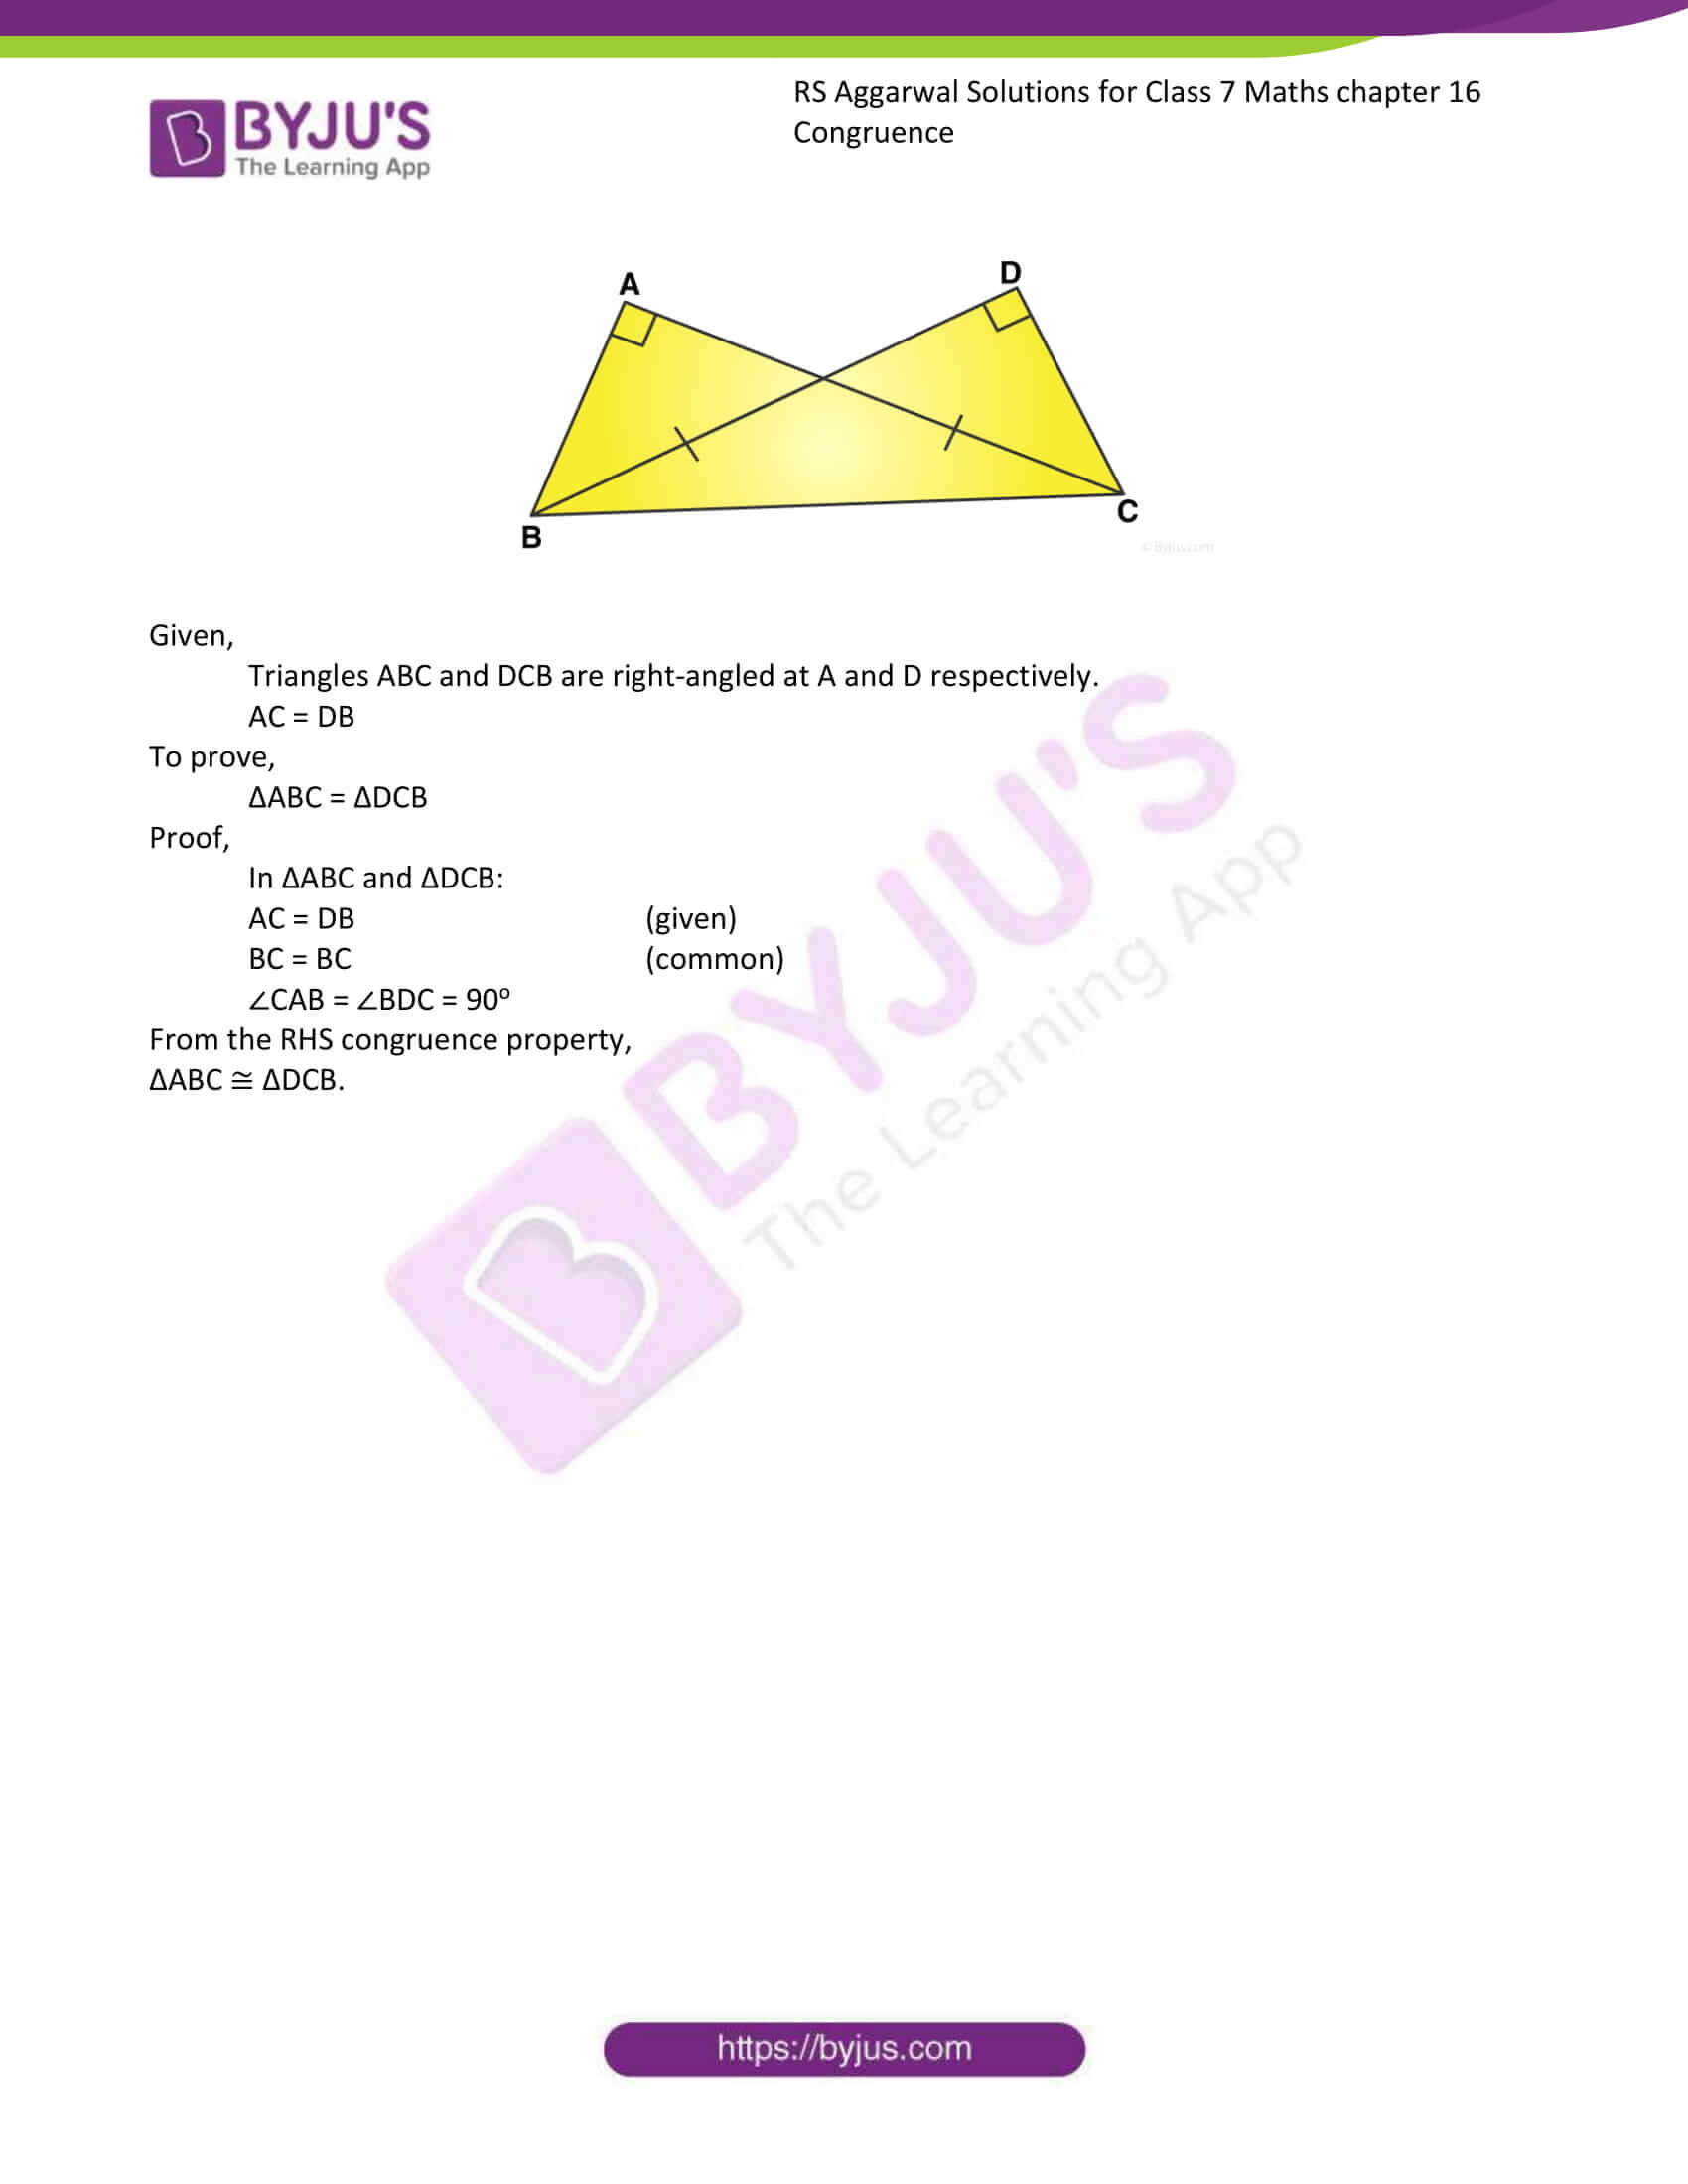 RS Aggarwal Solutions Class 7 Maths Chapter 16 Congruence 8